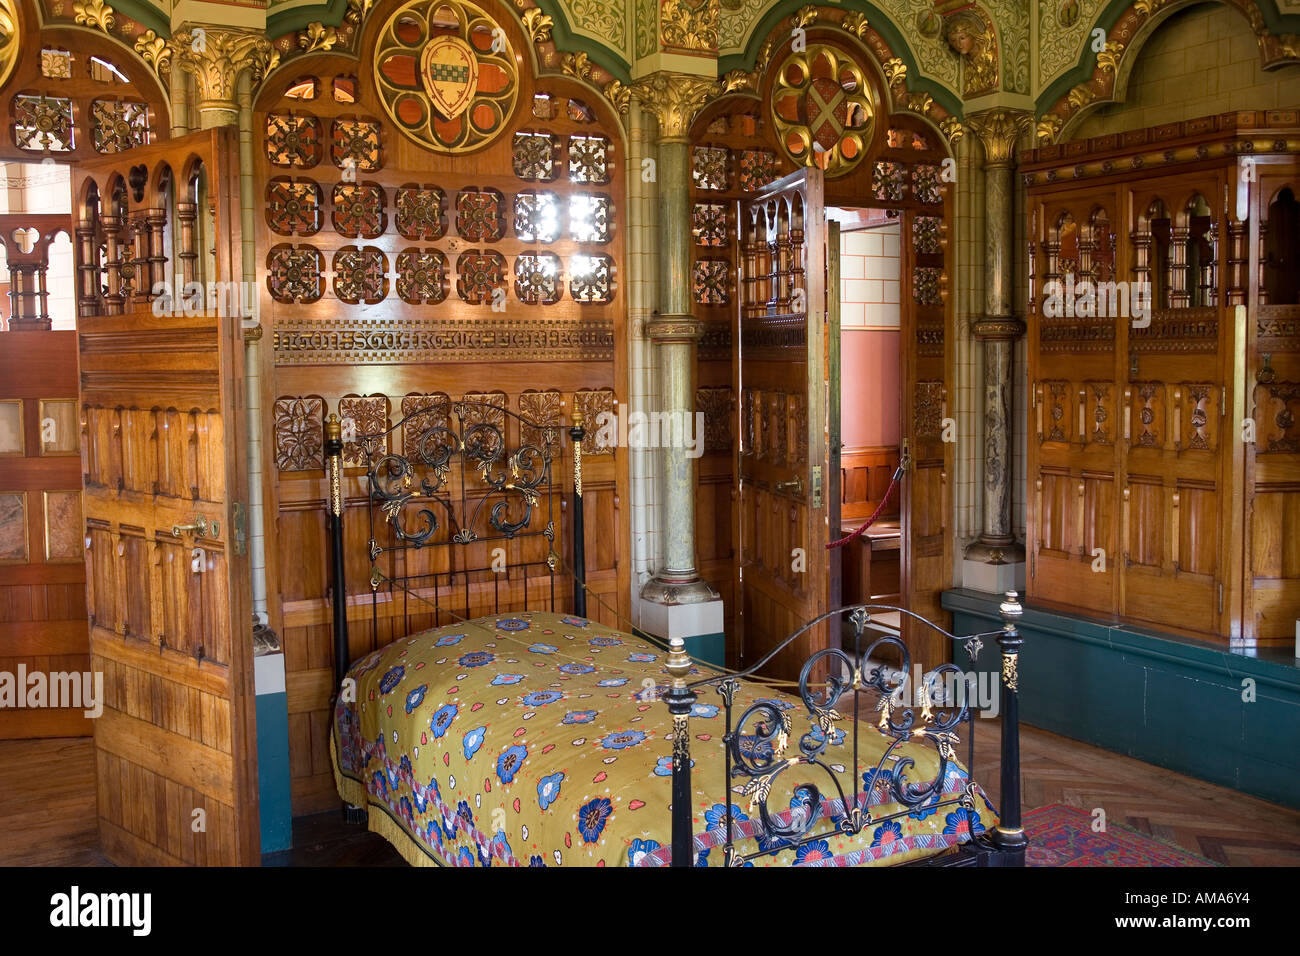 wales cardiff cardiff castle bedroom carved wooden heraldic bed wales cardiff cardiff castle lord butes bedroom stock photo